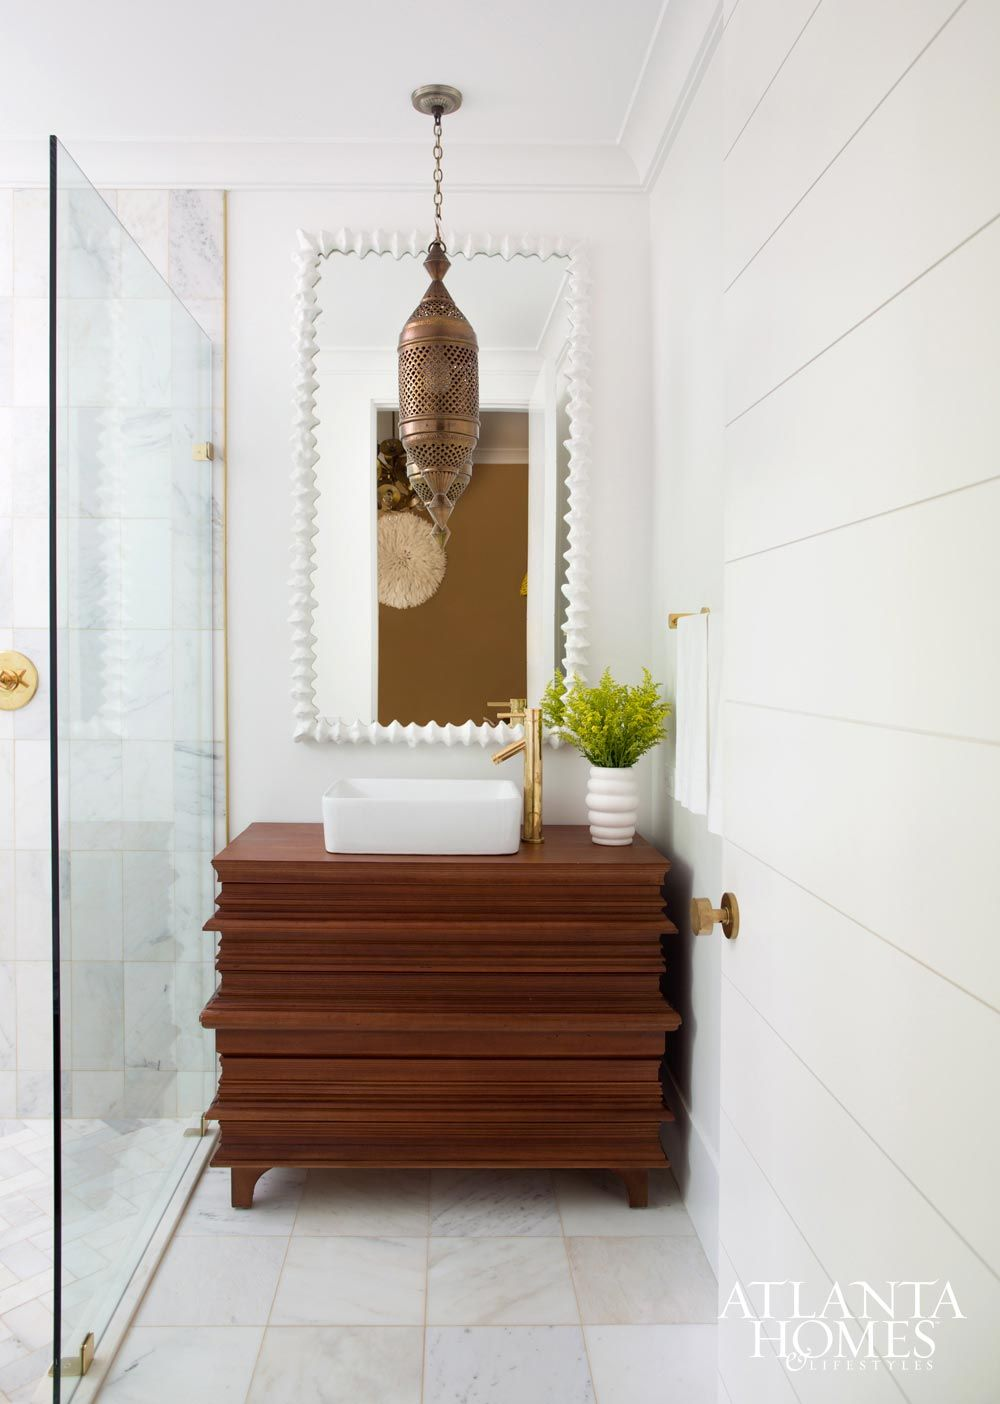 Crown Molding for Modern Bathrooms | Modern, Powder room and Zen style